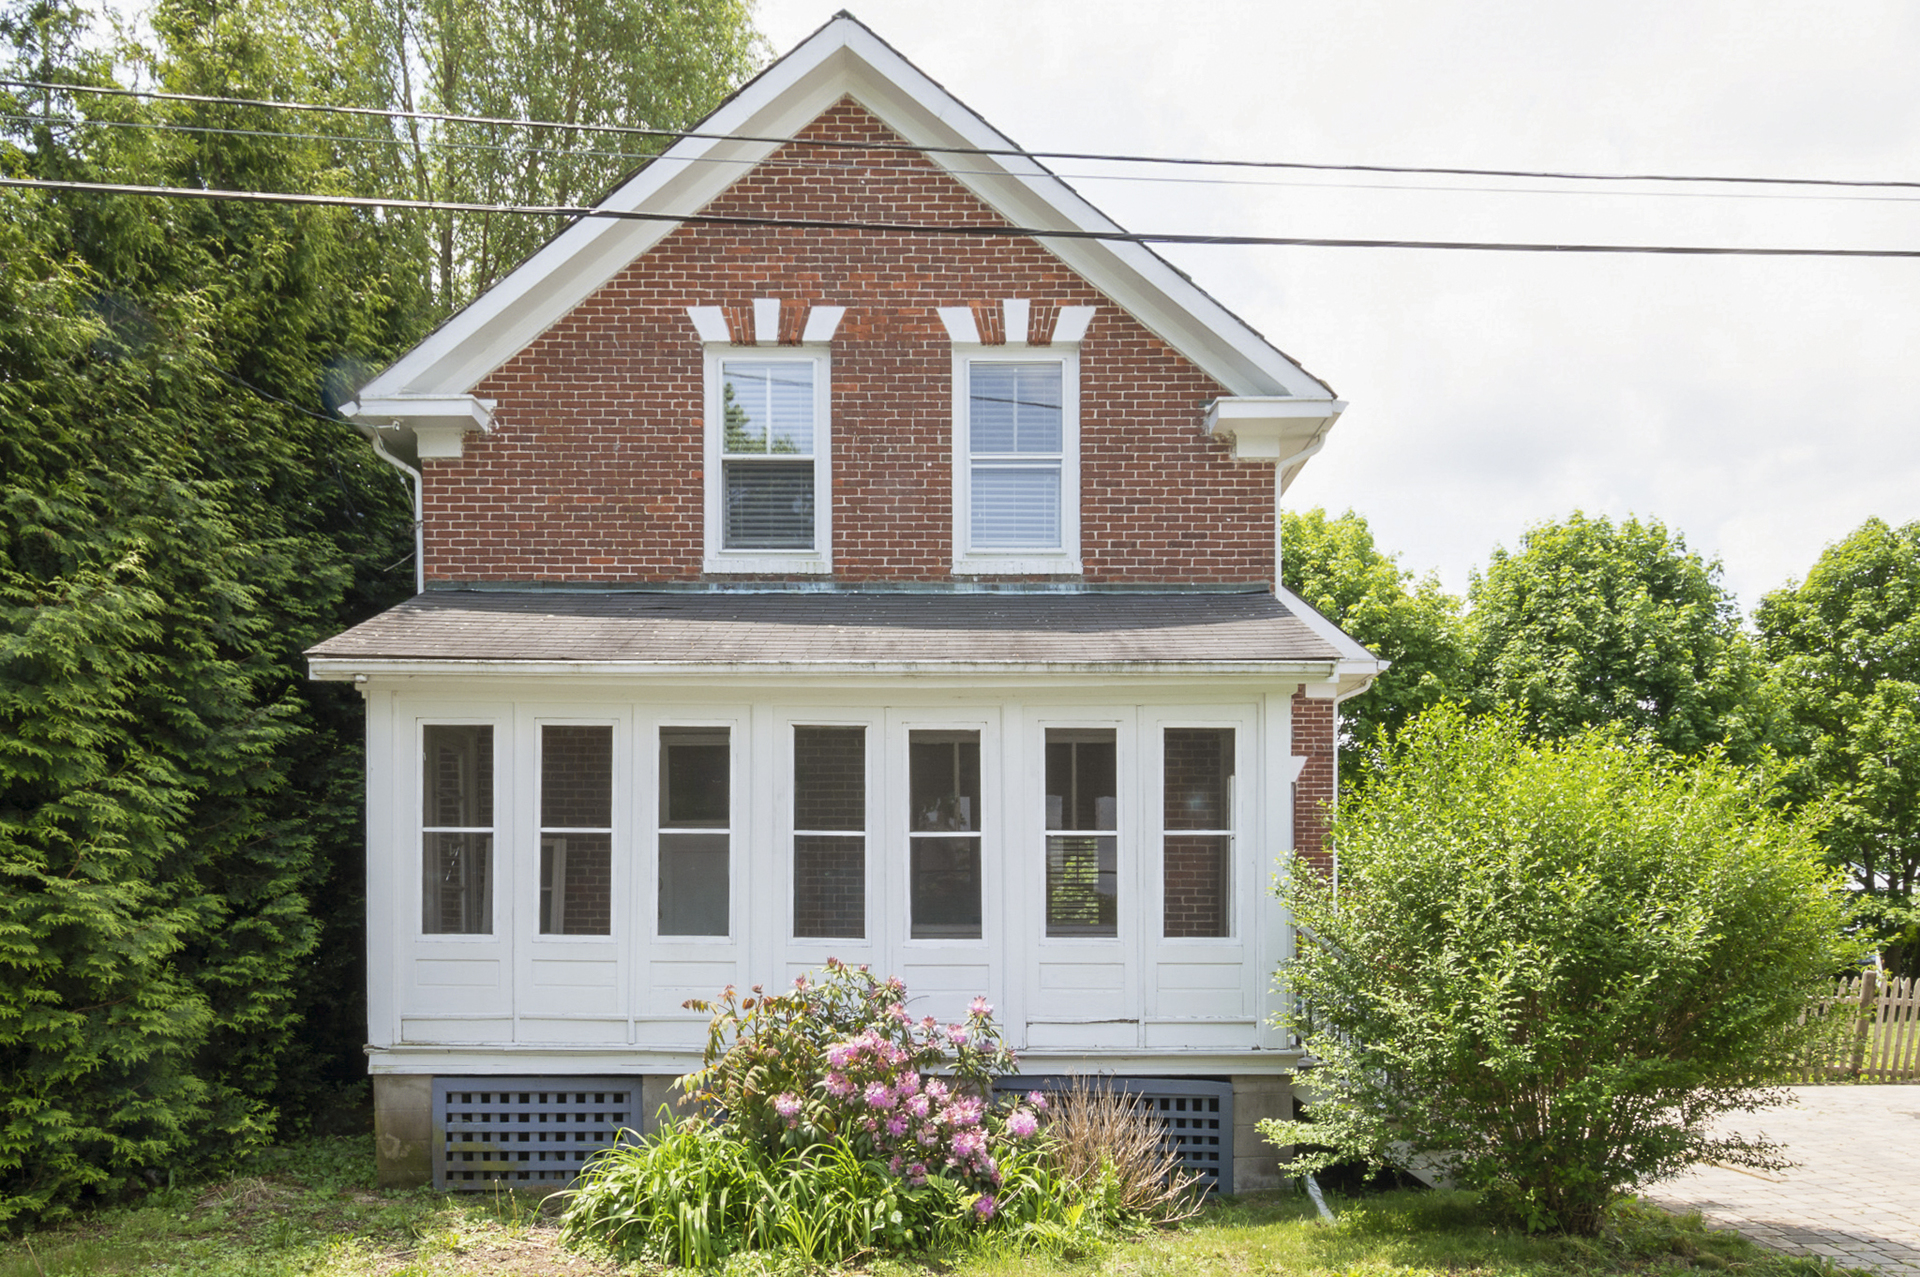 10 Lowe Ave , Warwick | Sat 6/8 11:00 - 1:00pm &Sun 12:00 to 2:00